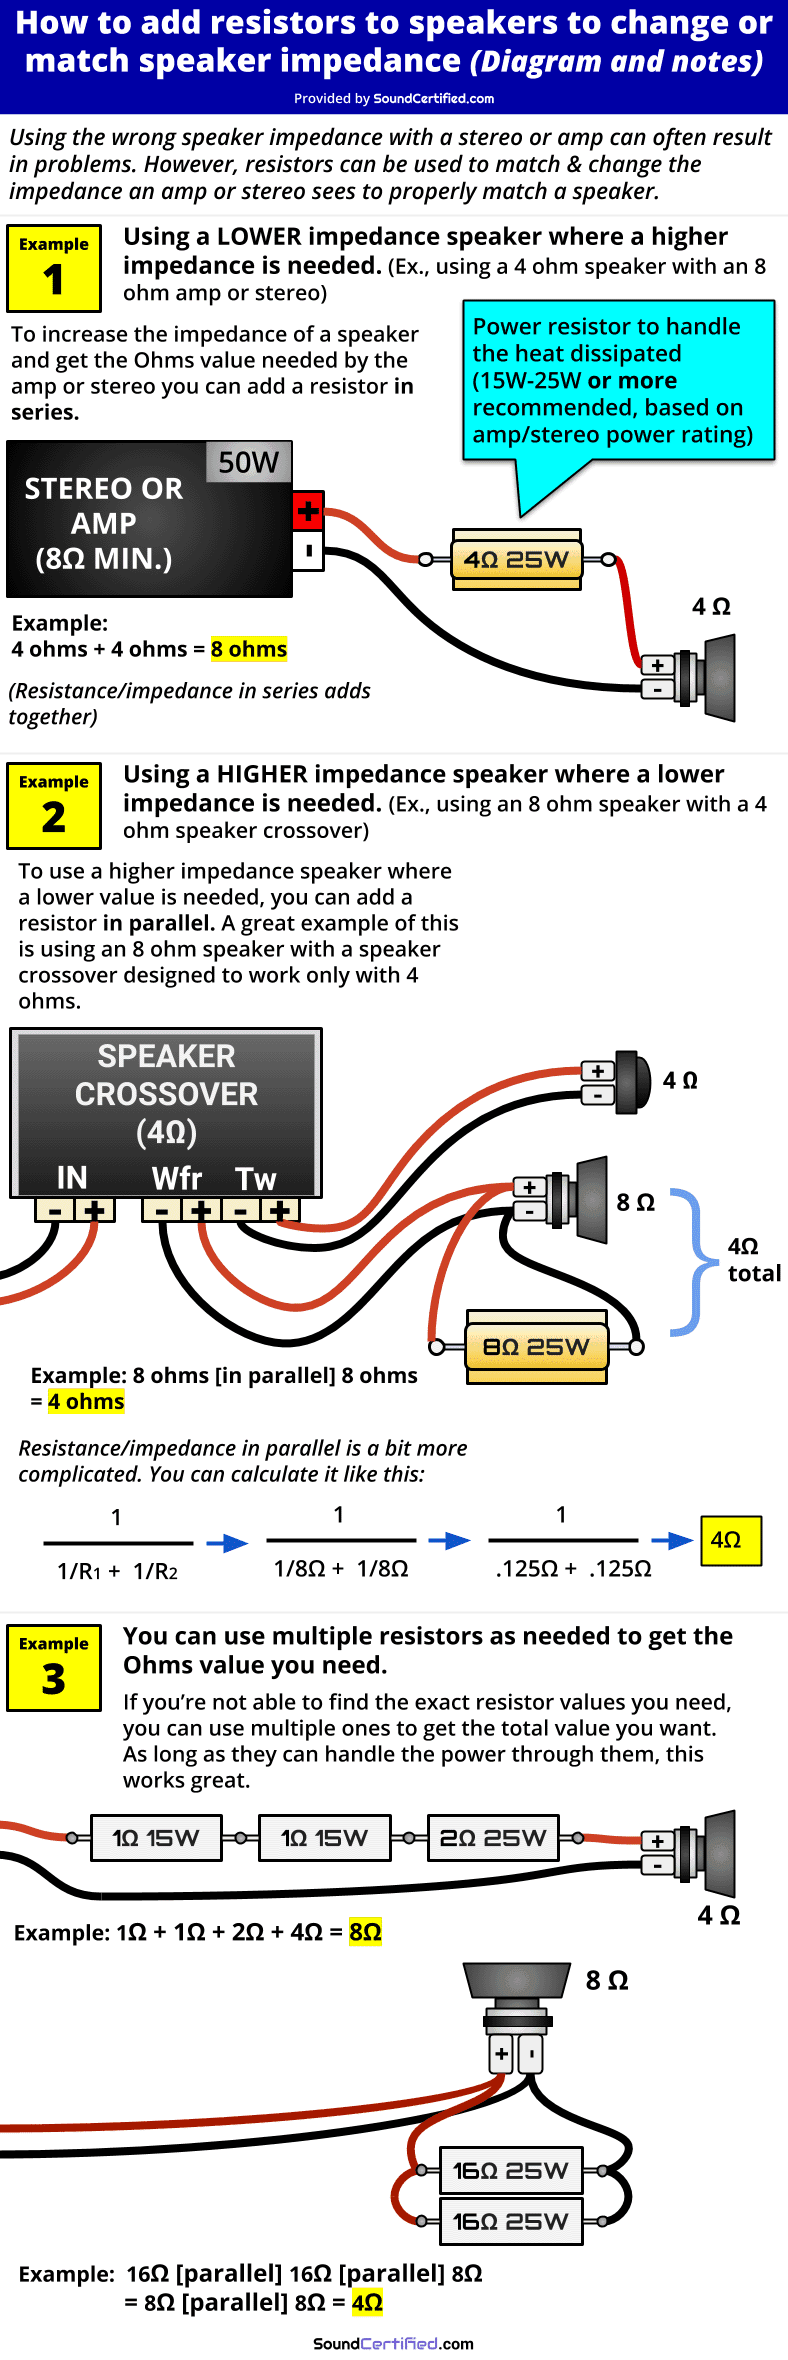 How to add resistor to speaker to change impedance diagram